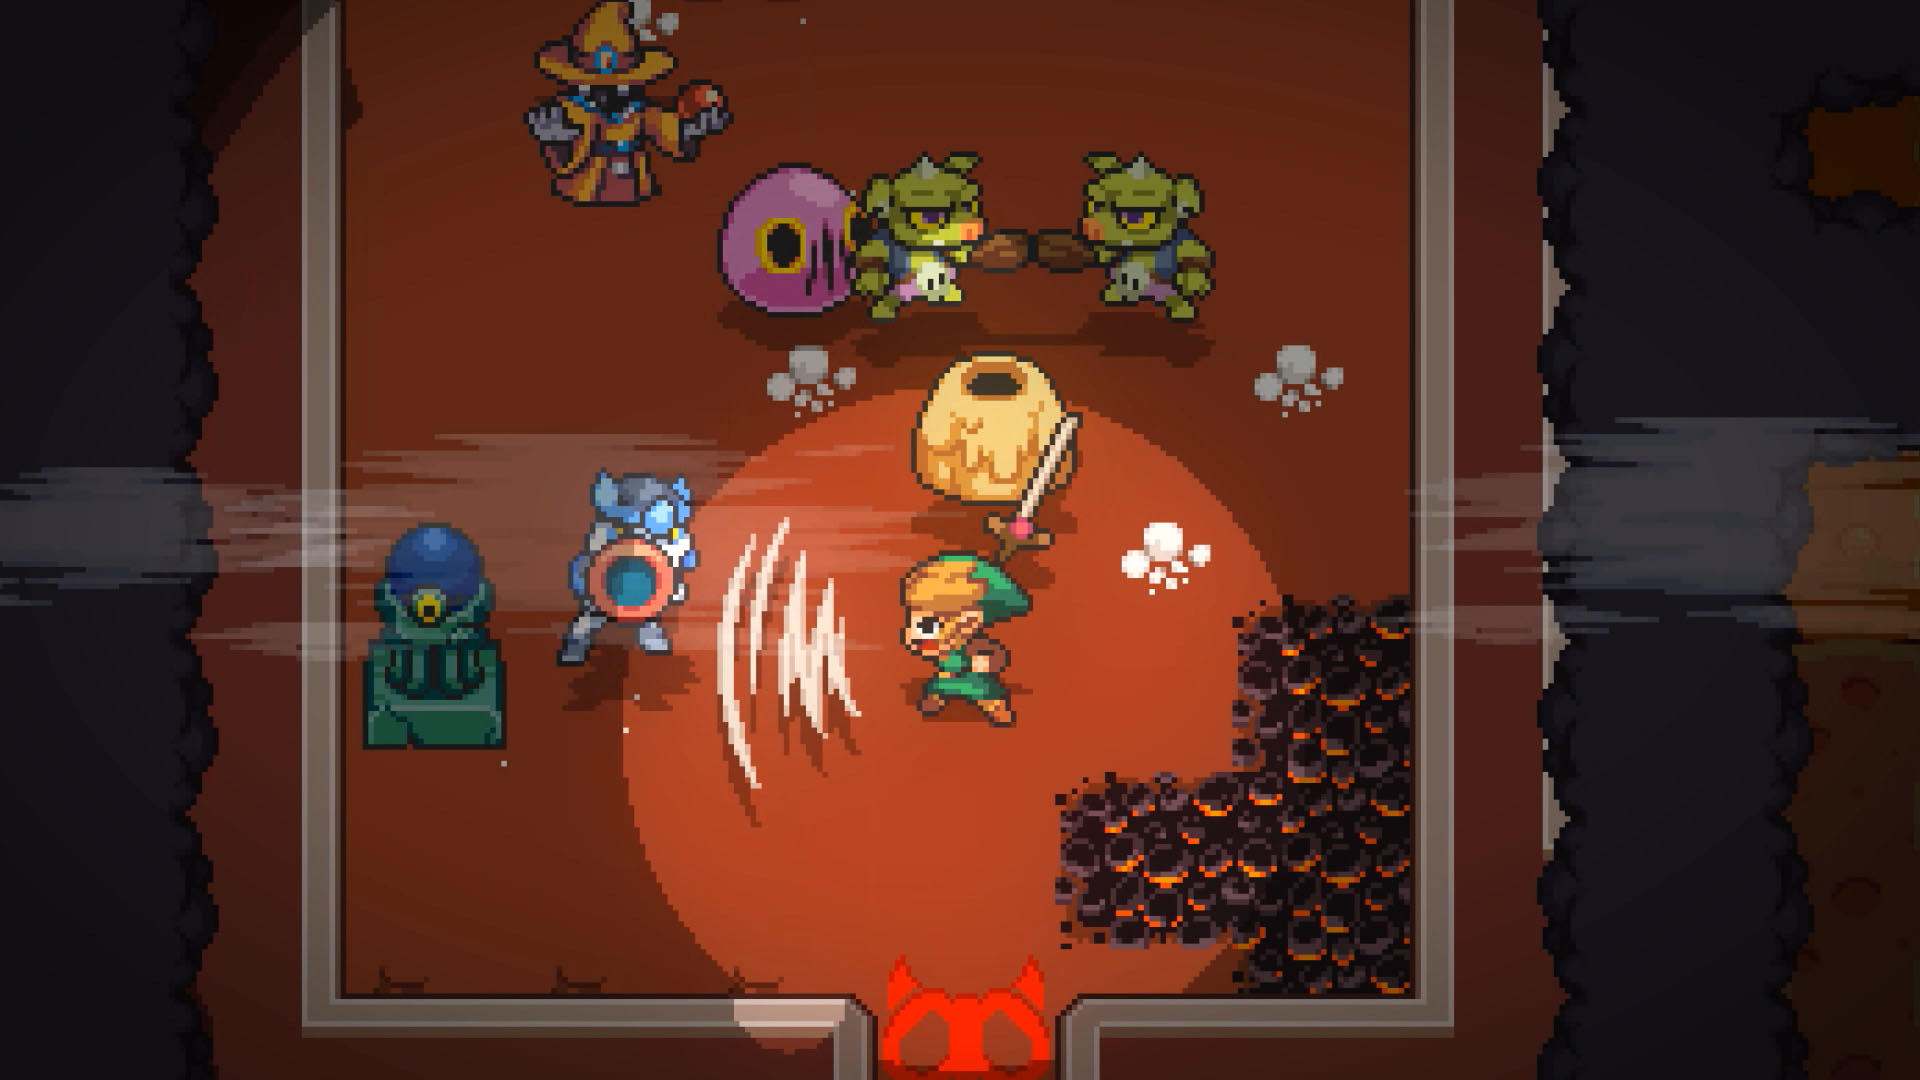 Action, adventure, Brace Yourself Games, Cadence of Hyrule, Cadence of Hyrule – Crypt of the NecroDancer Featuring The Legend of Zelda, Cadence of Hyrule – Crypt of the NecroDancer Featuring The Legend of Zelda Review, Music, Nintendo, Nintendo Switch Review, Rating 10/10, Rhythm, Switch Review